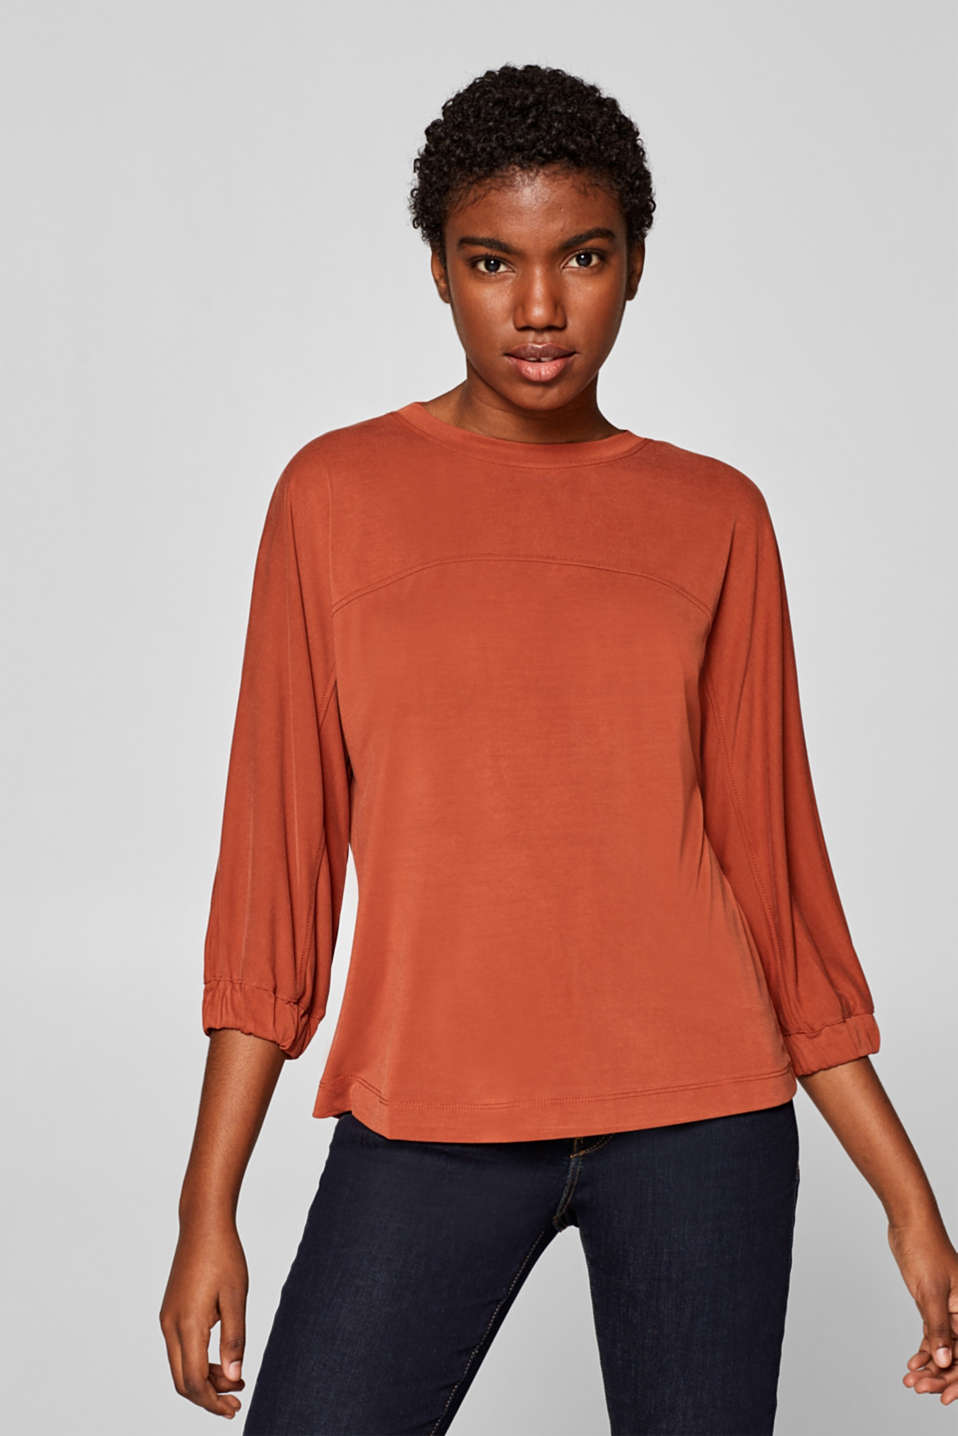 Esprit - Boxy T-shirt with a peach skin texture